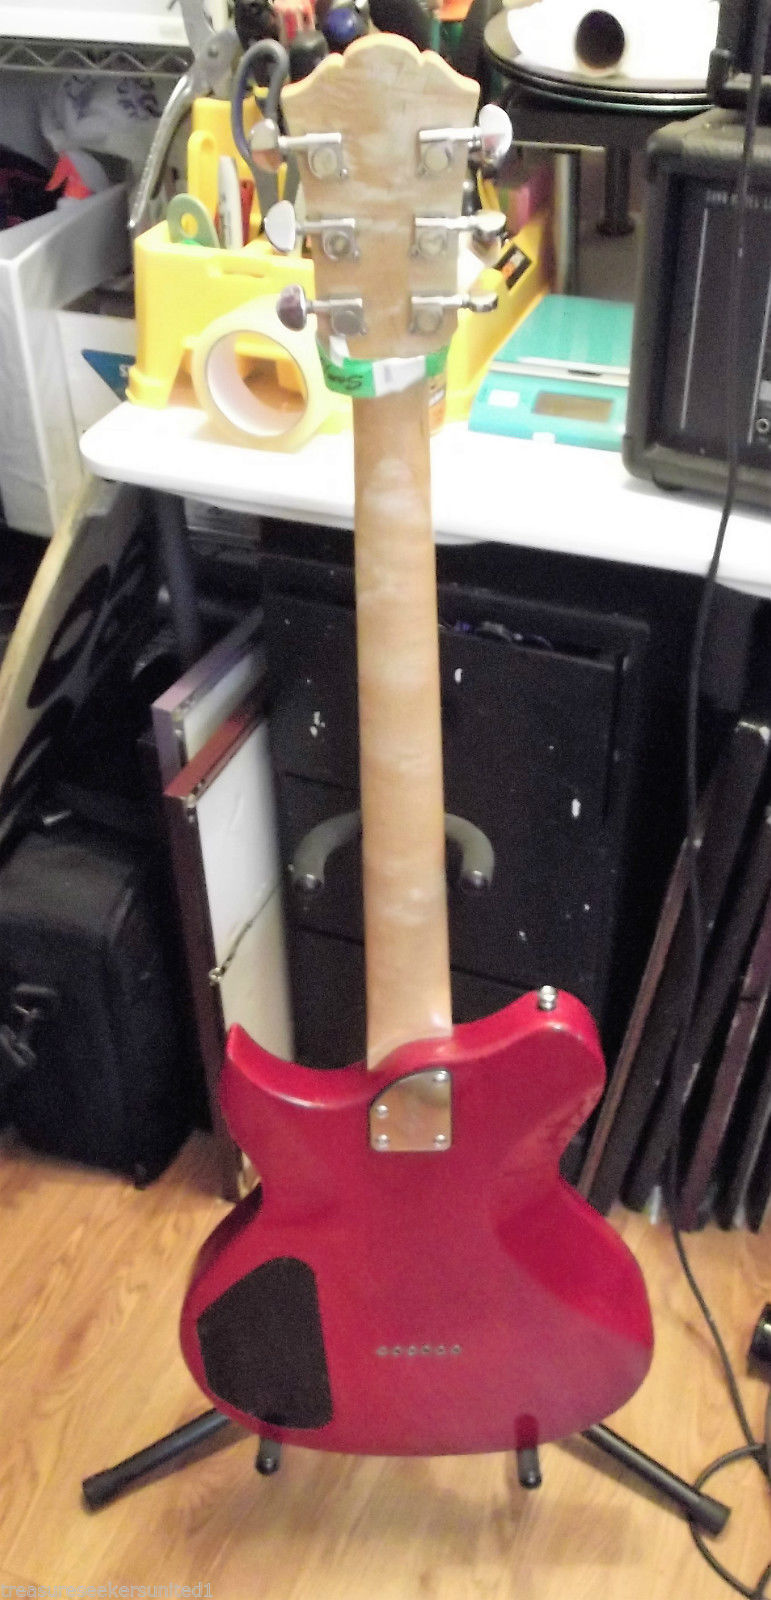 lyon by washburn li15 red electric guitar clean and new. Black Bedroom Furniture Sets. Home Design Ideas